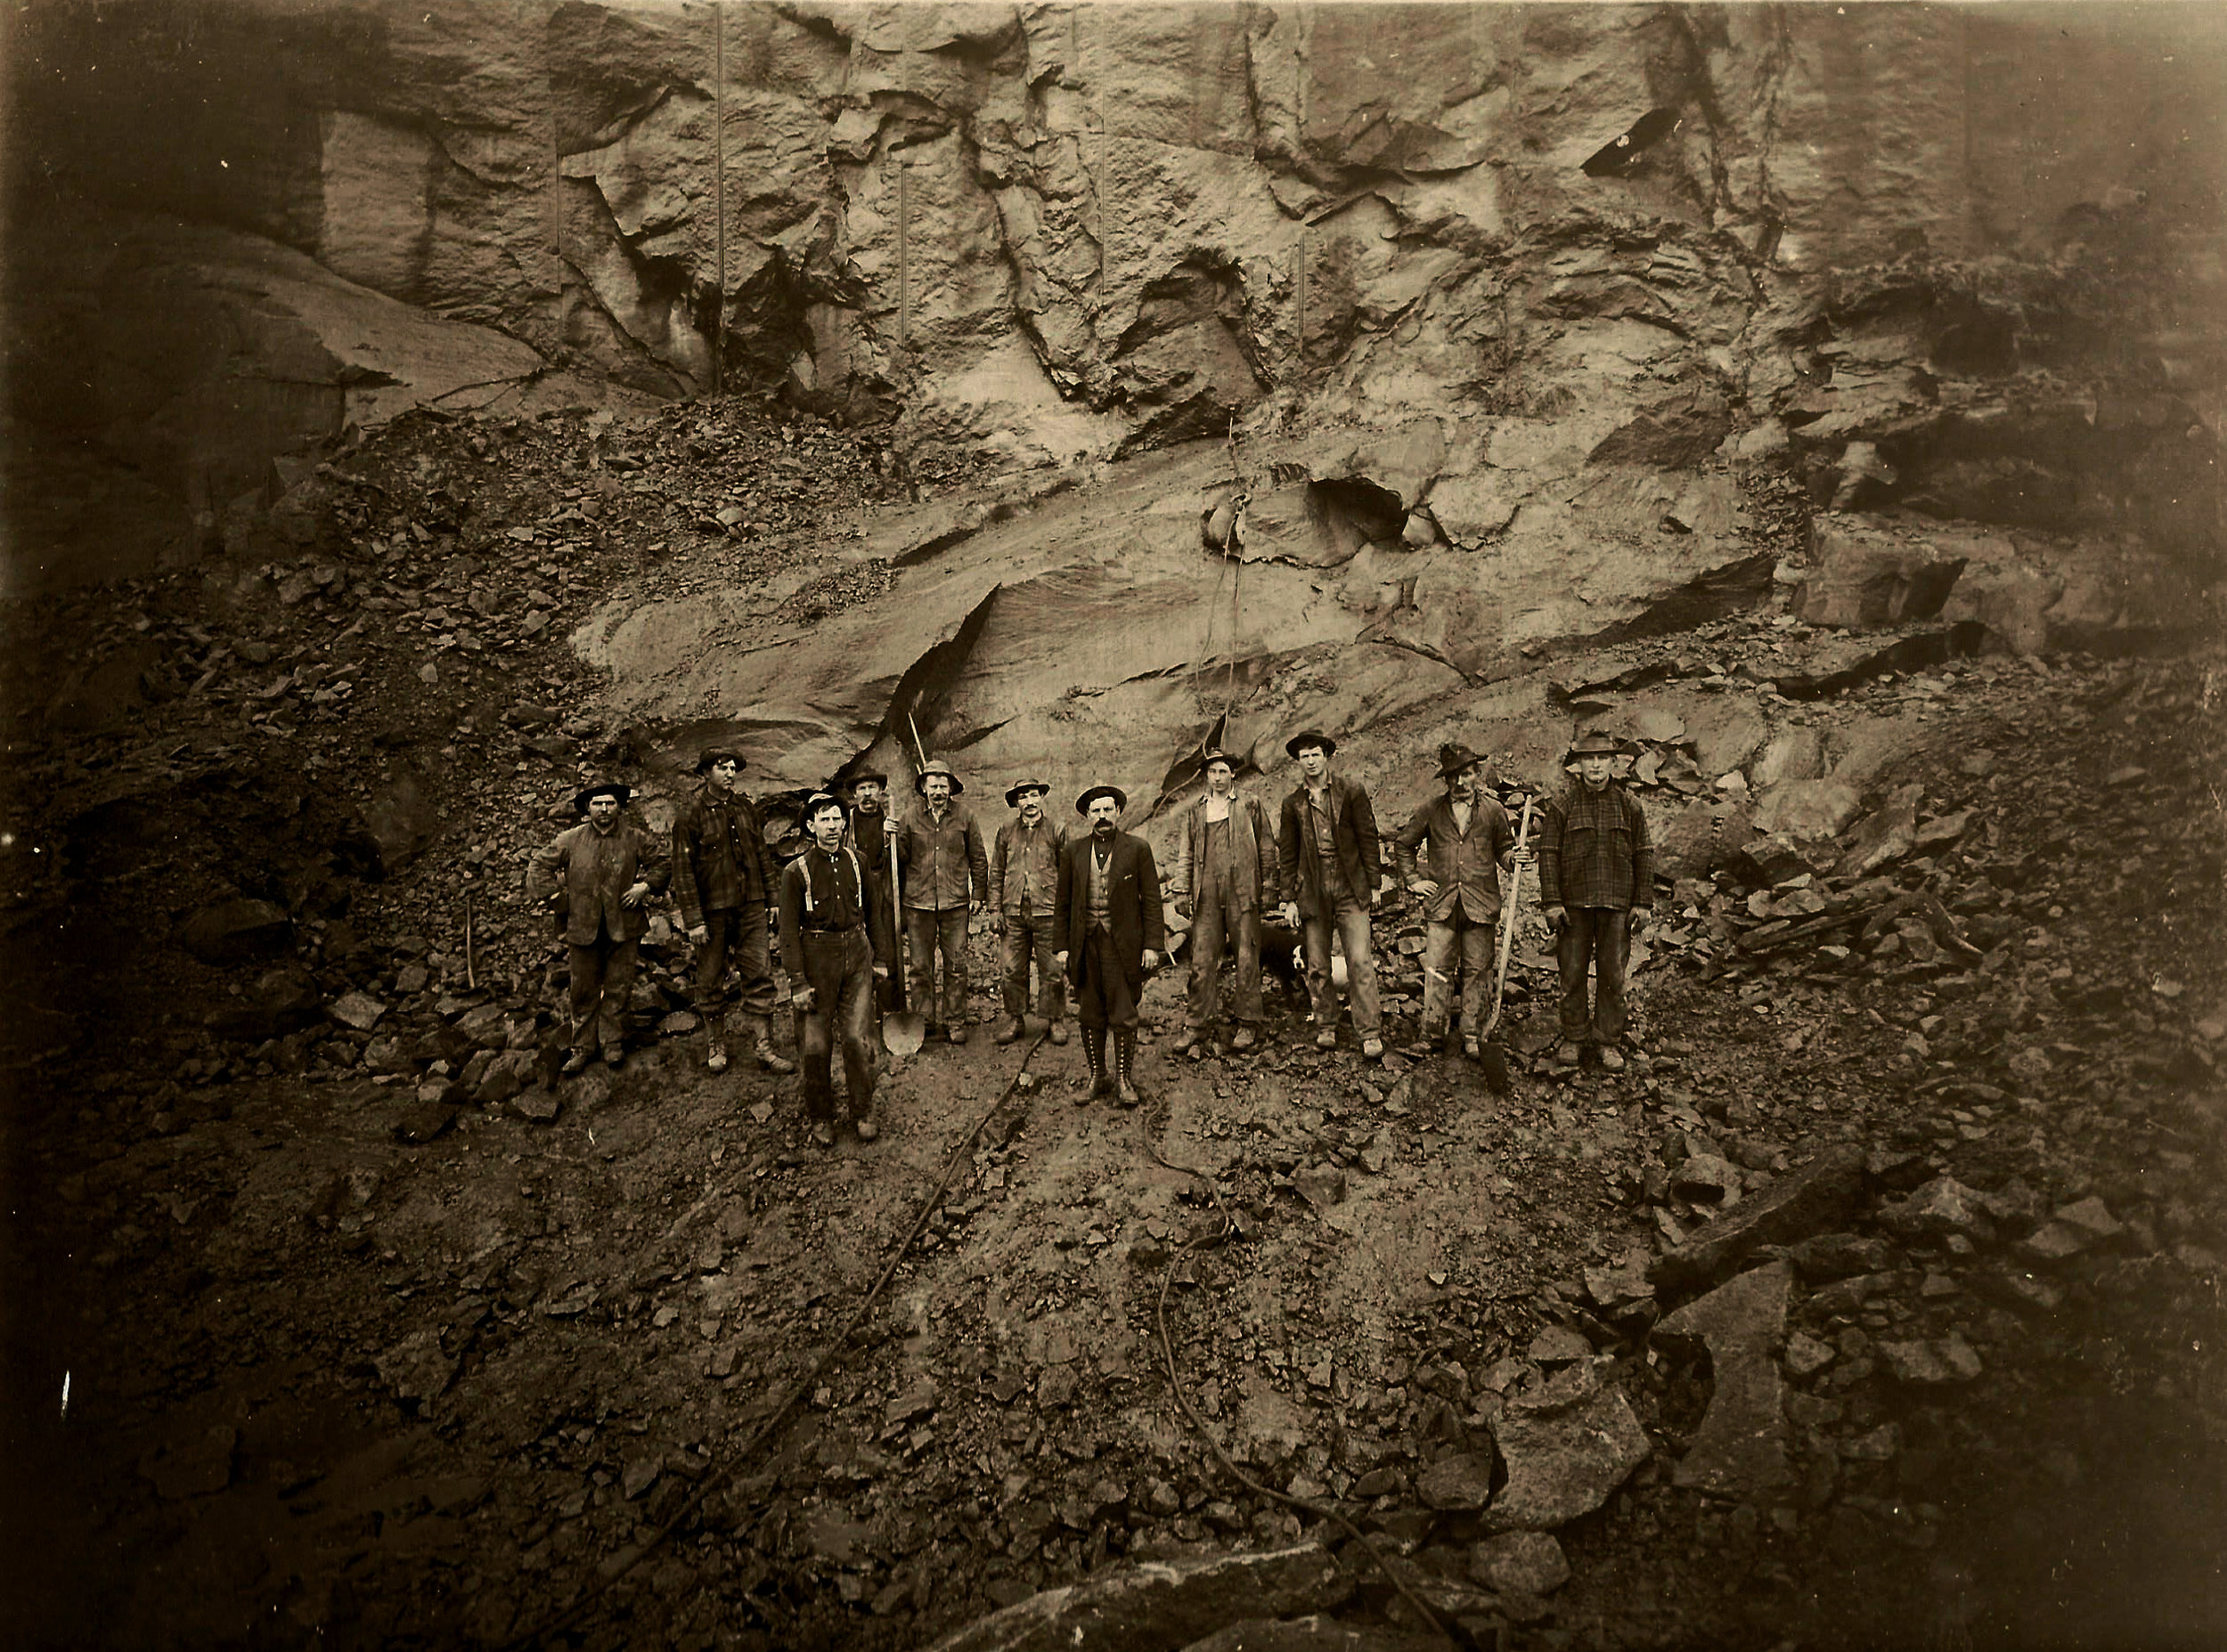 Workers of the Hercules Sandstone Company pose for a photo in the Hercules #6 quarry, where stone was blasted for use in jetties.